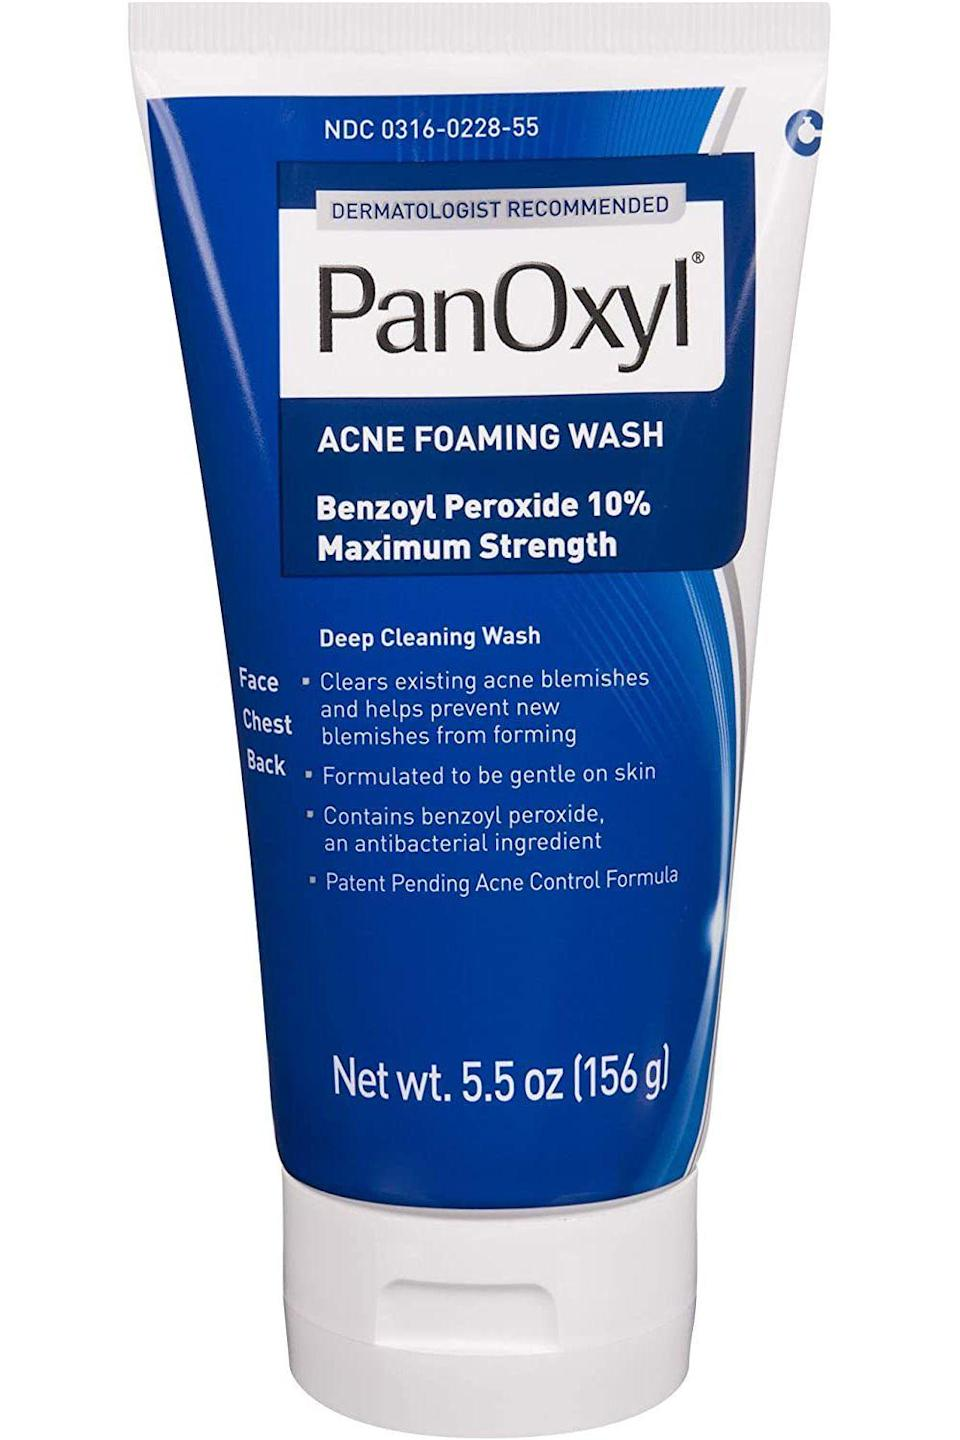 "<p><strong>PanOxyl</strong></p><p>amazon.com</p><p><strong>$9.59</strong></p><p><a href=""https://www.amazon.com/dp/B081KL2QYJ?tag=syn-yahoo-20&ascsubtag=%5Bartid%7C10056.g.34944530%5Bsrc%7Cyahoo-us"" rel=""nofollow noopener"" target=""_blank"" data-ylk=""slk:Shop Now"" class=""link rapid-noclick-resp"">Shop Now</a></p><p>Another no-nonsense cleanser, this maximum strength wash is made with 10% benzoyl peroxide to quickly get to work on skin. The right-under-$10 price tag is great for beginners—there's no reason not to try it. </p>"